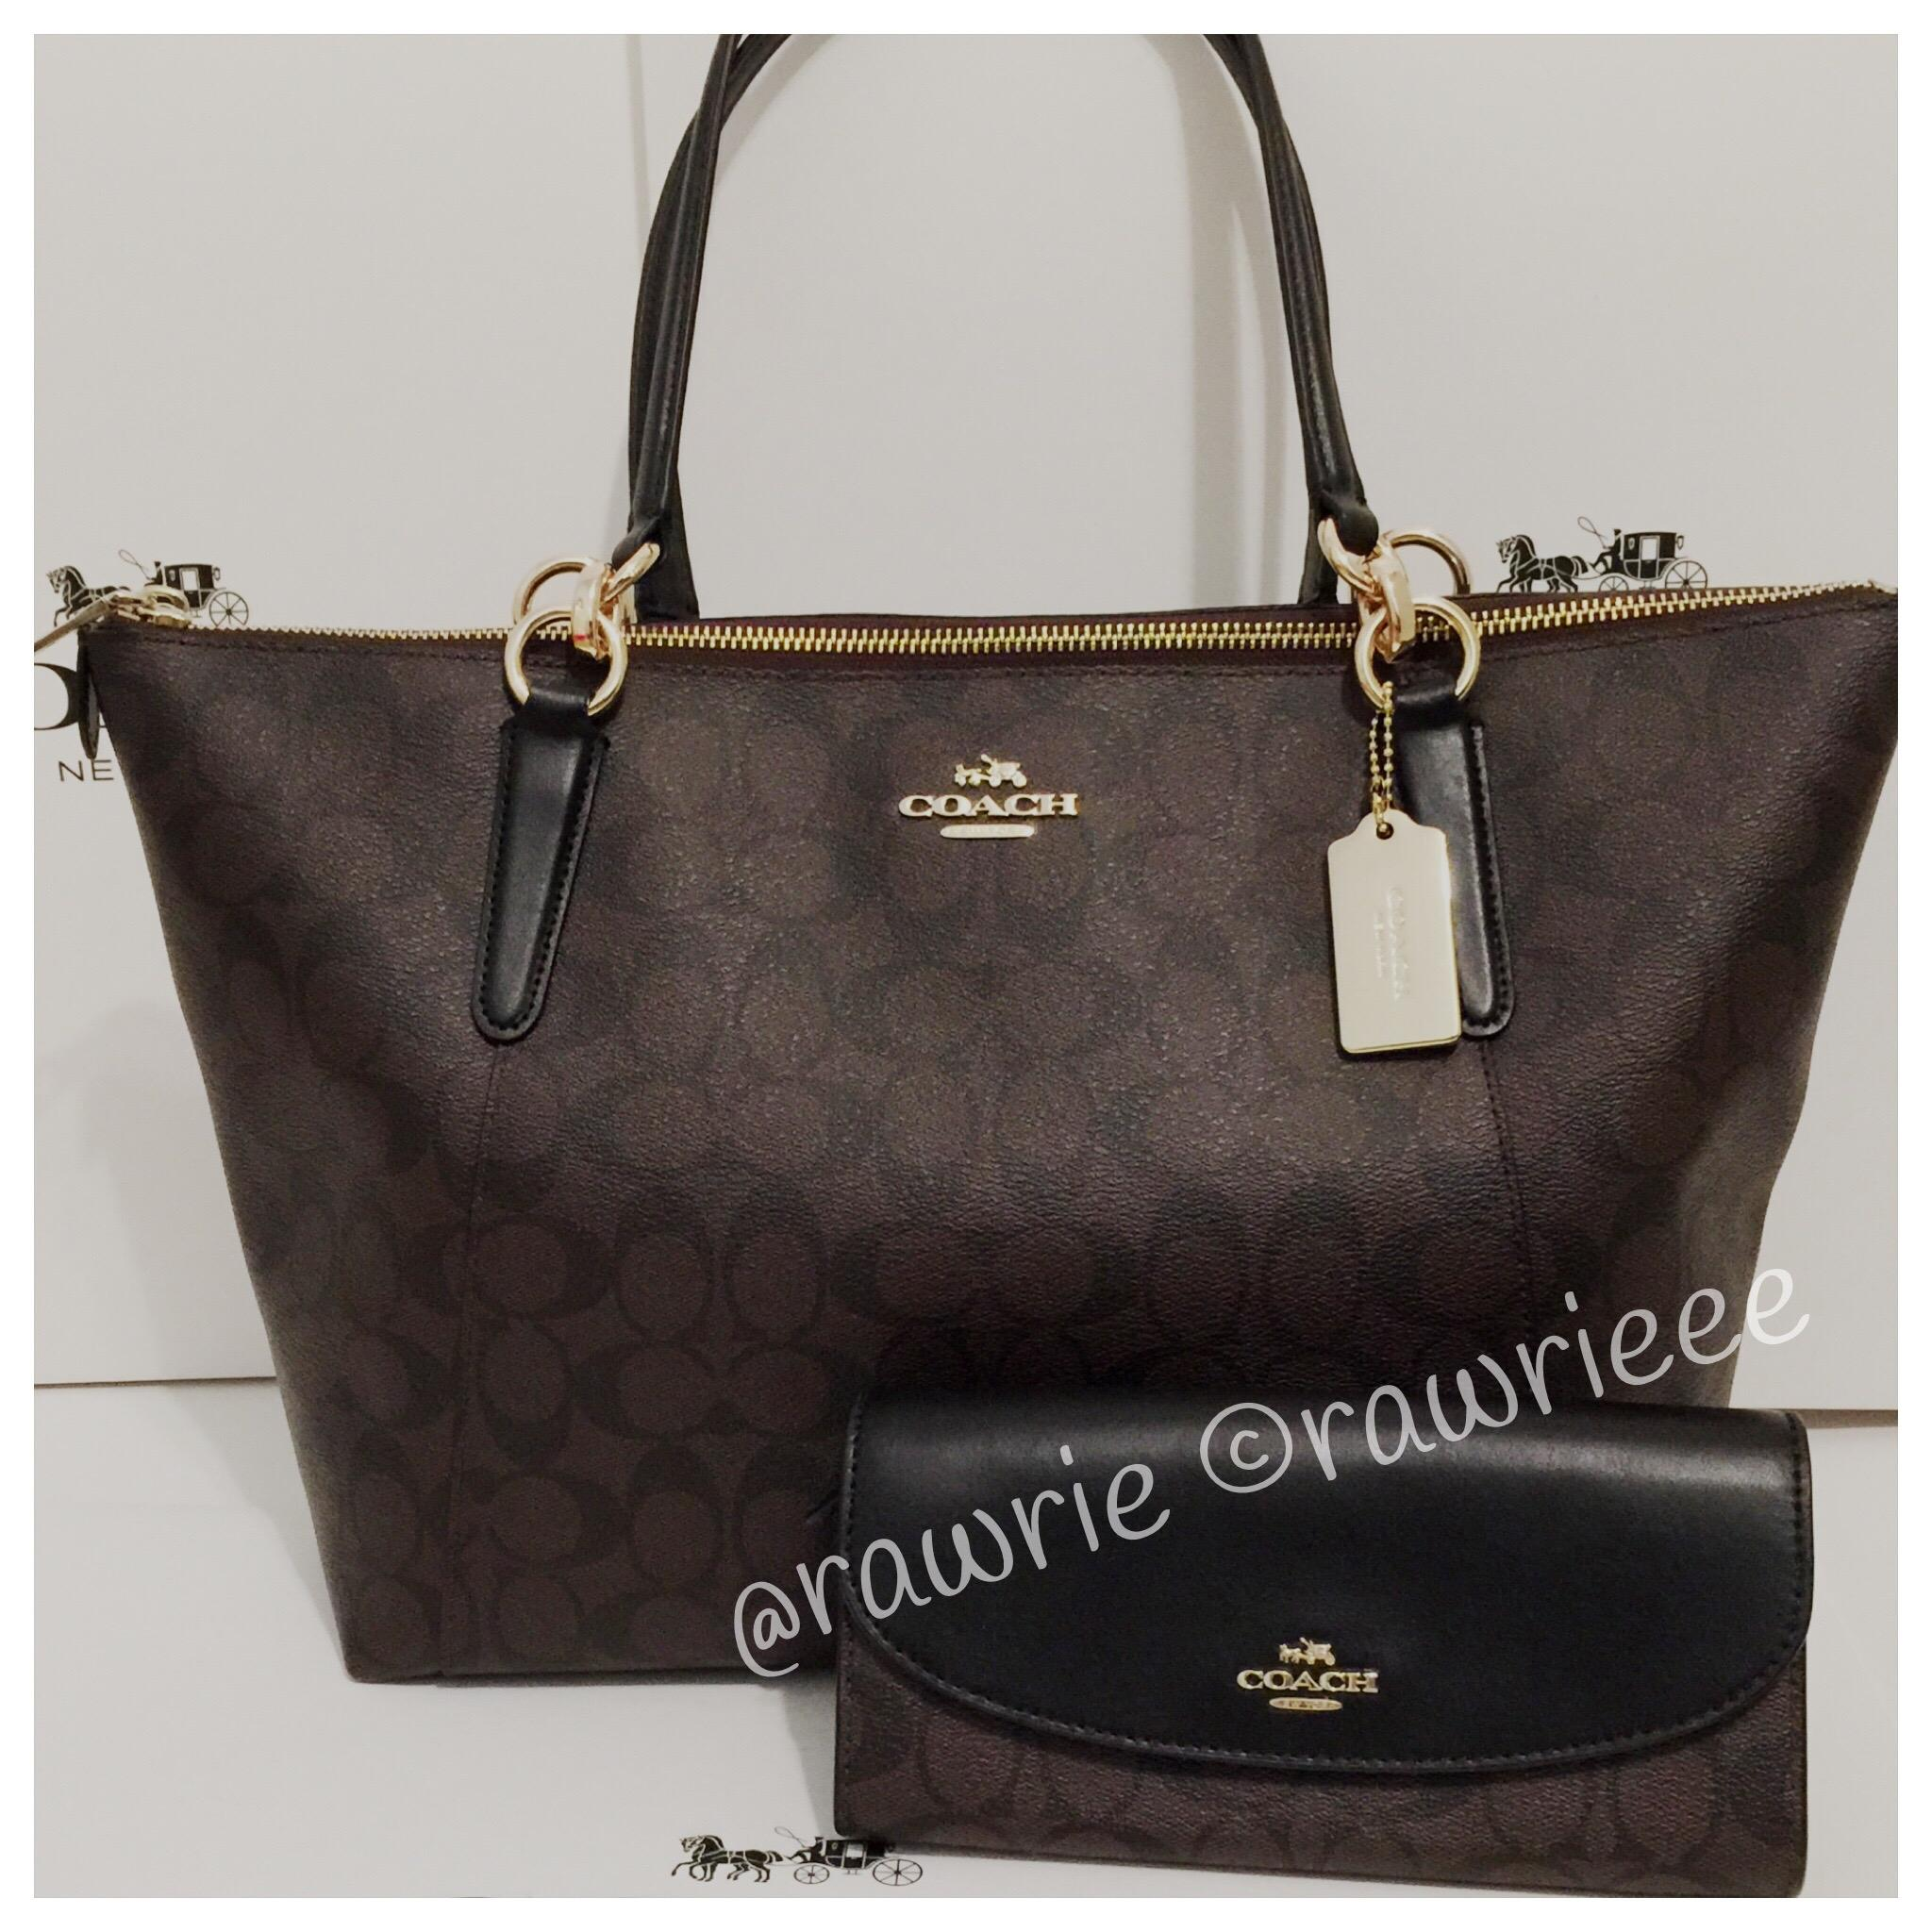 Promo Code For Coach Black Brown Handbag 1fc55 987e2 Small Margot Carryall In Signature Canvas F34608 New Zealand Monogram Gift Set Matching Tote Eb367 Fefc4